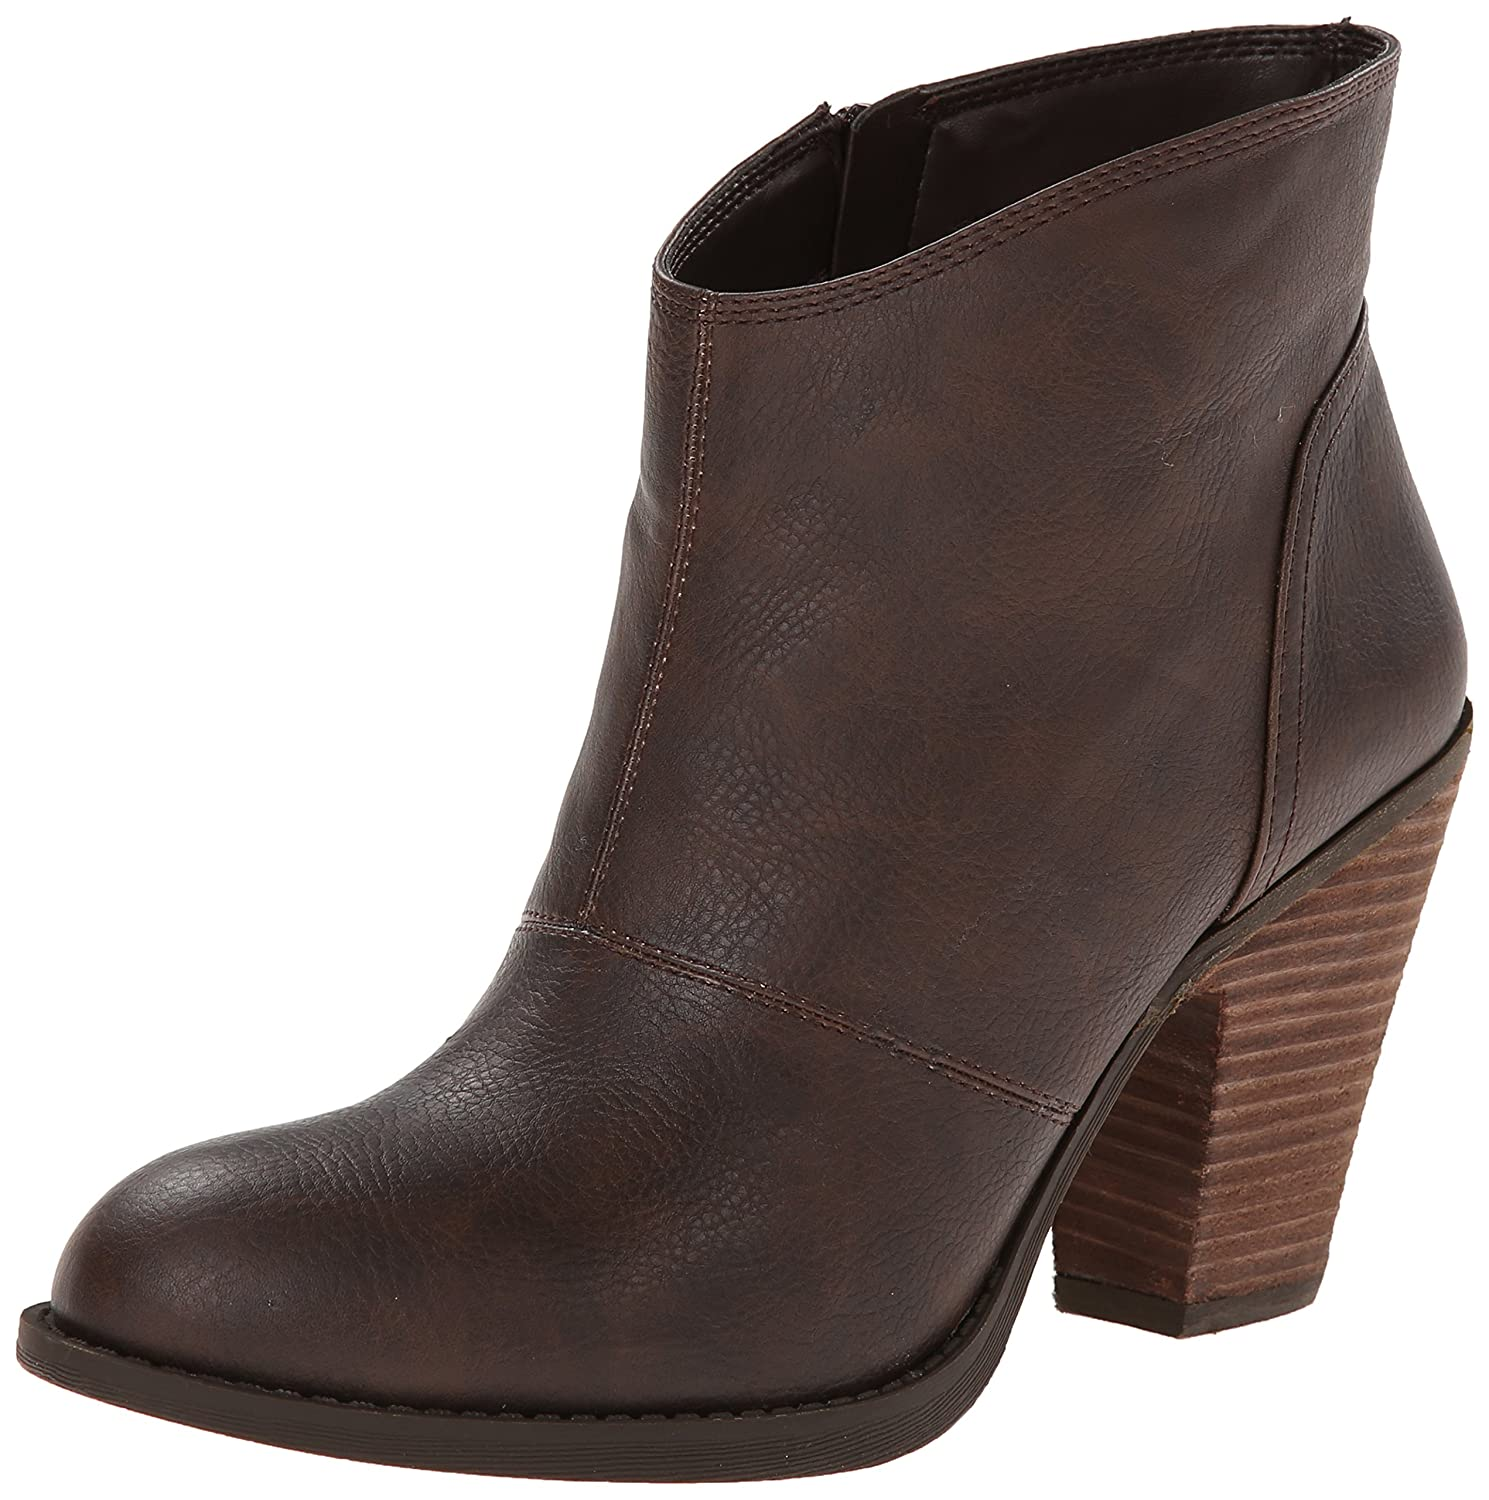 Jessica Simpson Women's Maxi Ankle Bootie B00LET3GD4 8 B(M) US|Fudgie